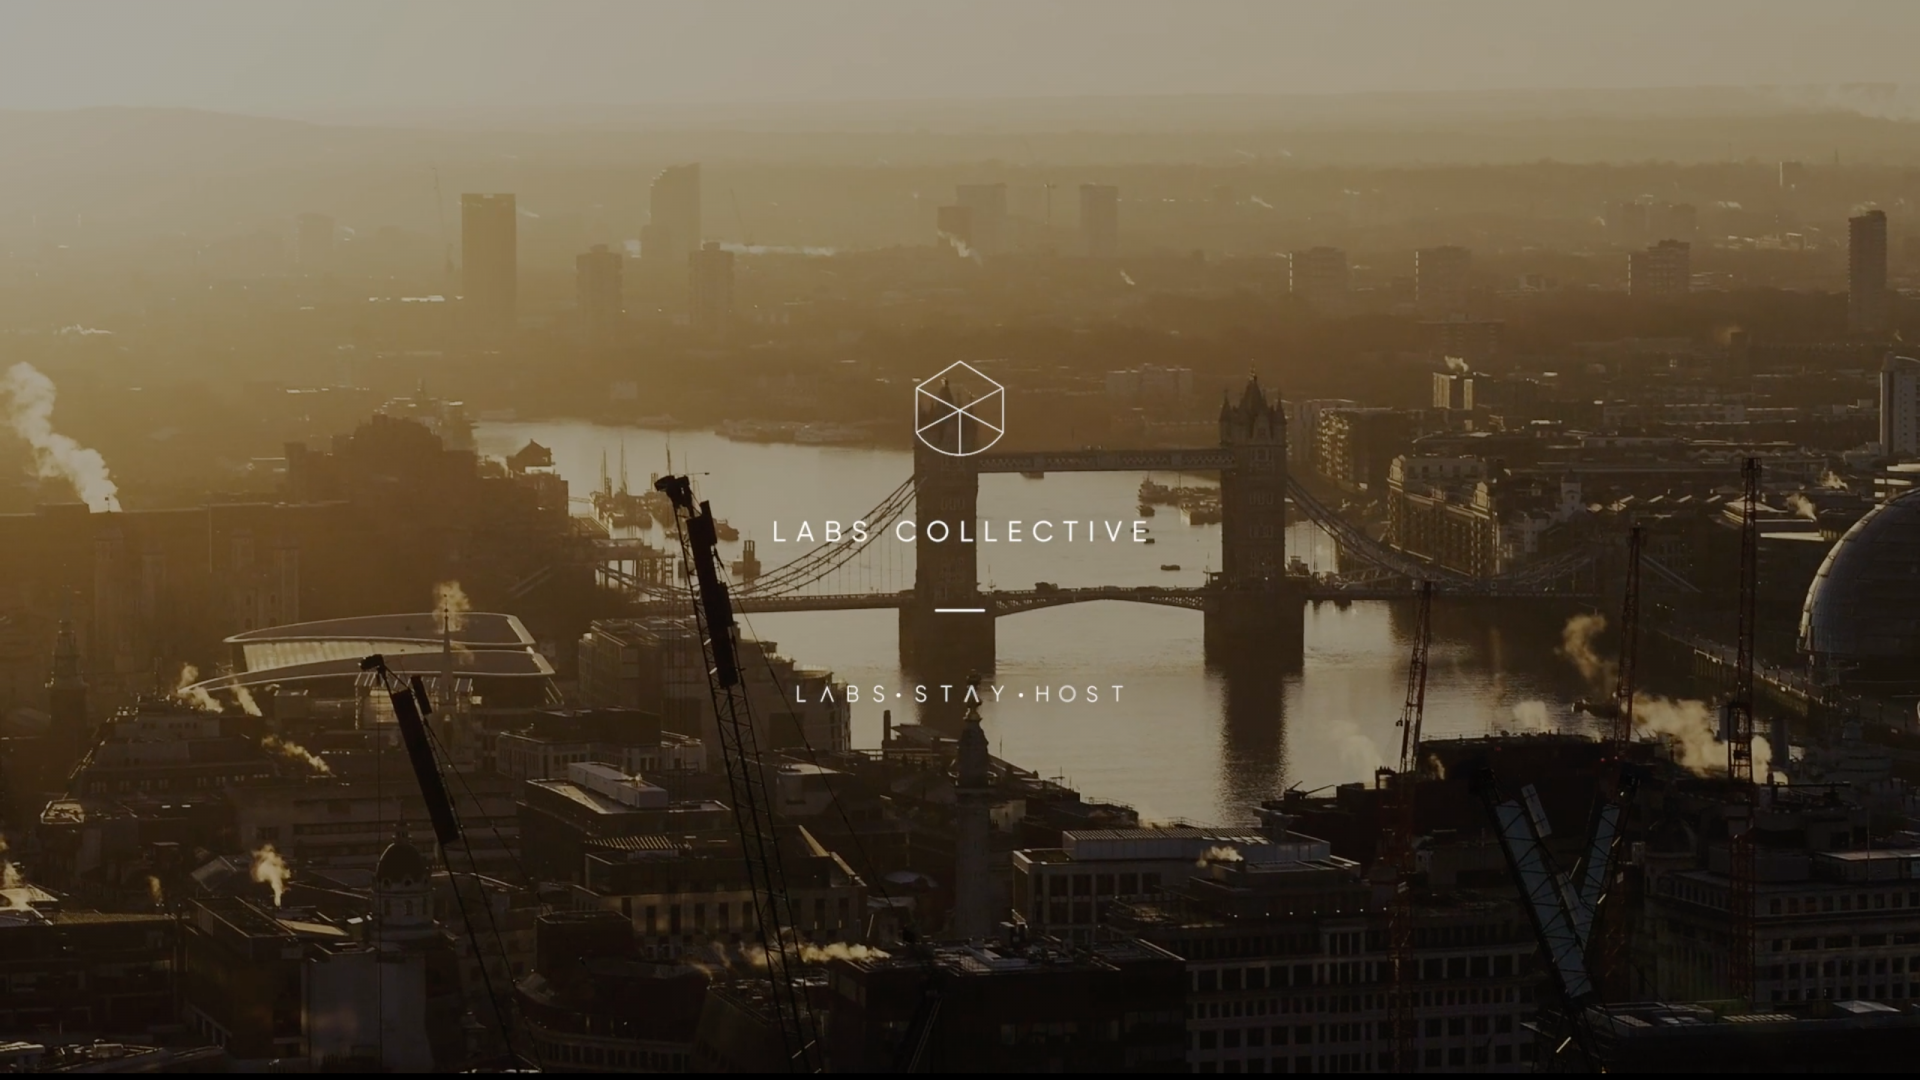 LABS - COLLECTIVE